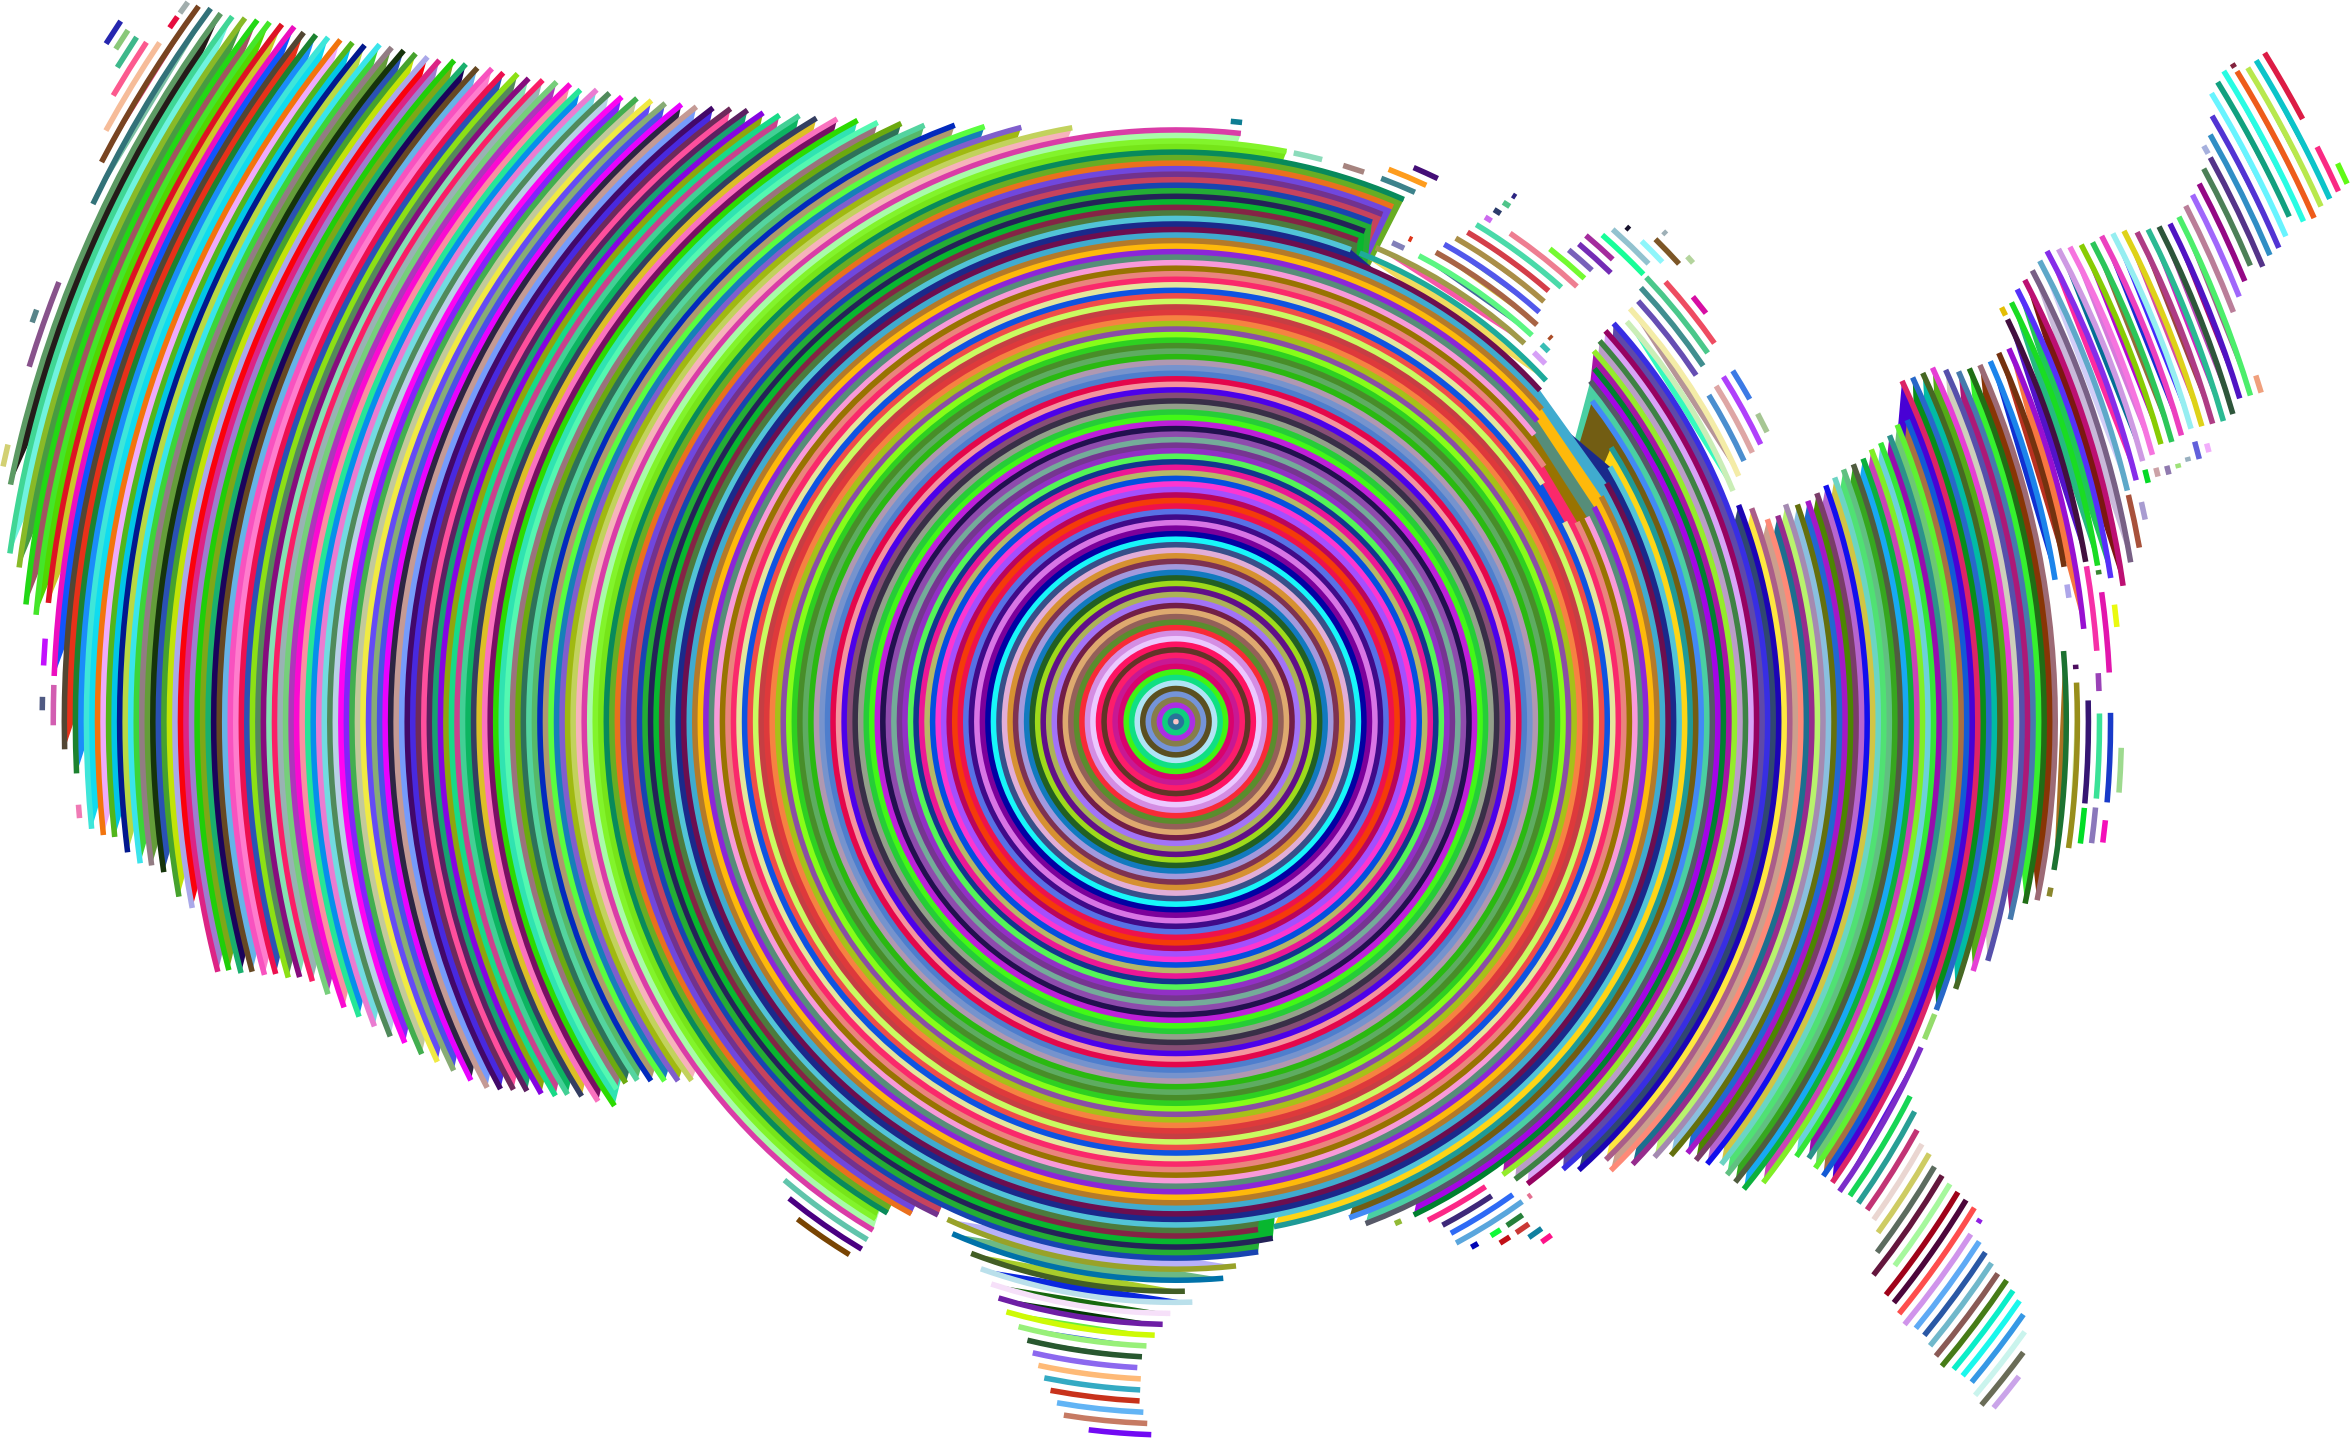 Prismatic United States Concentric Circles by GDJ